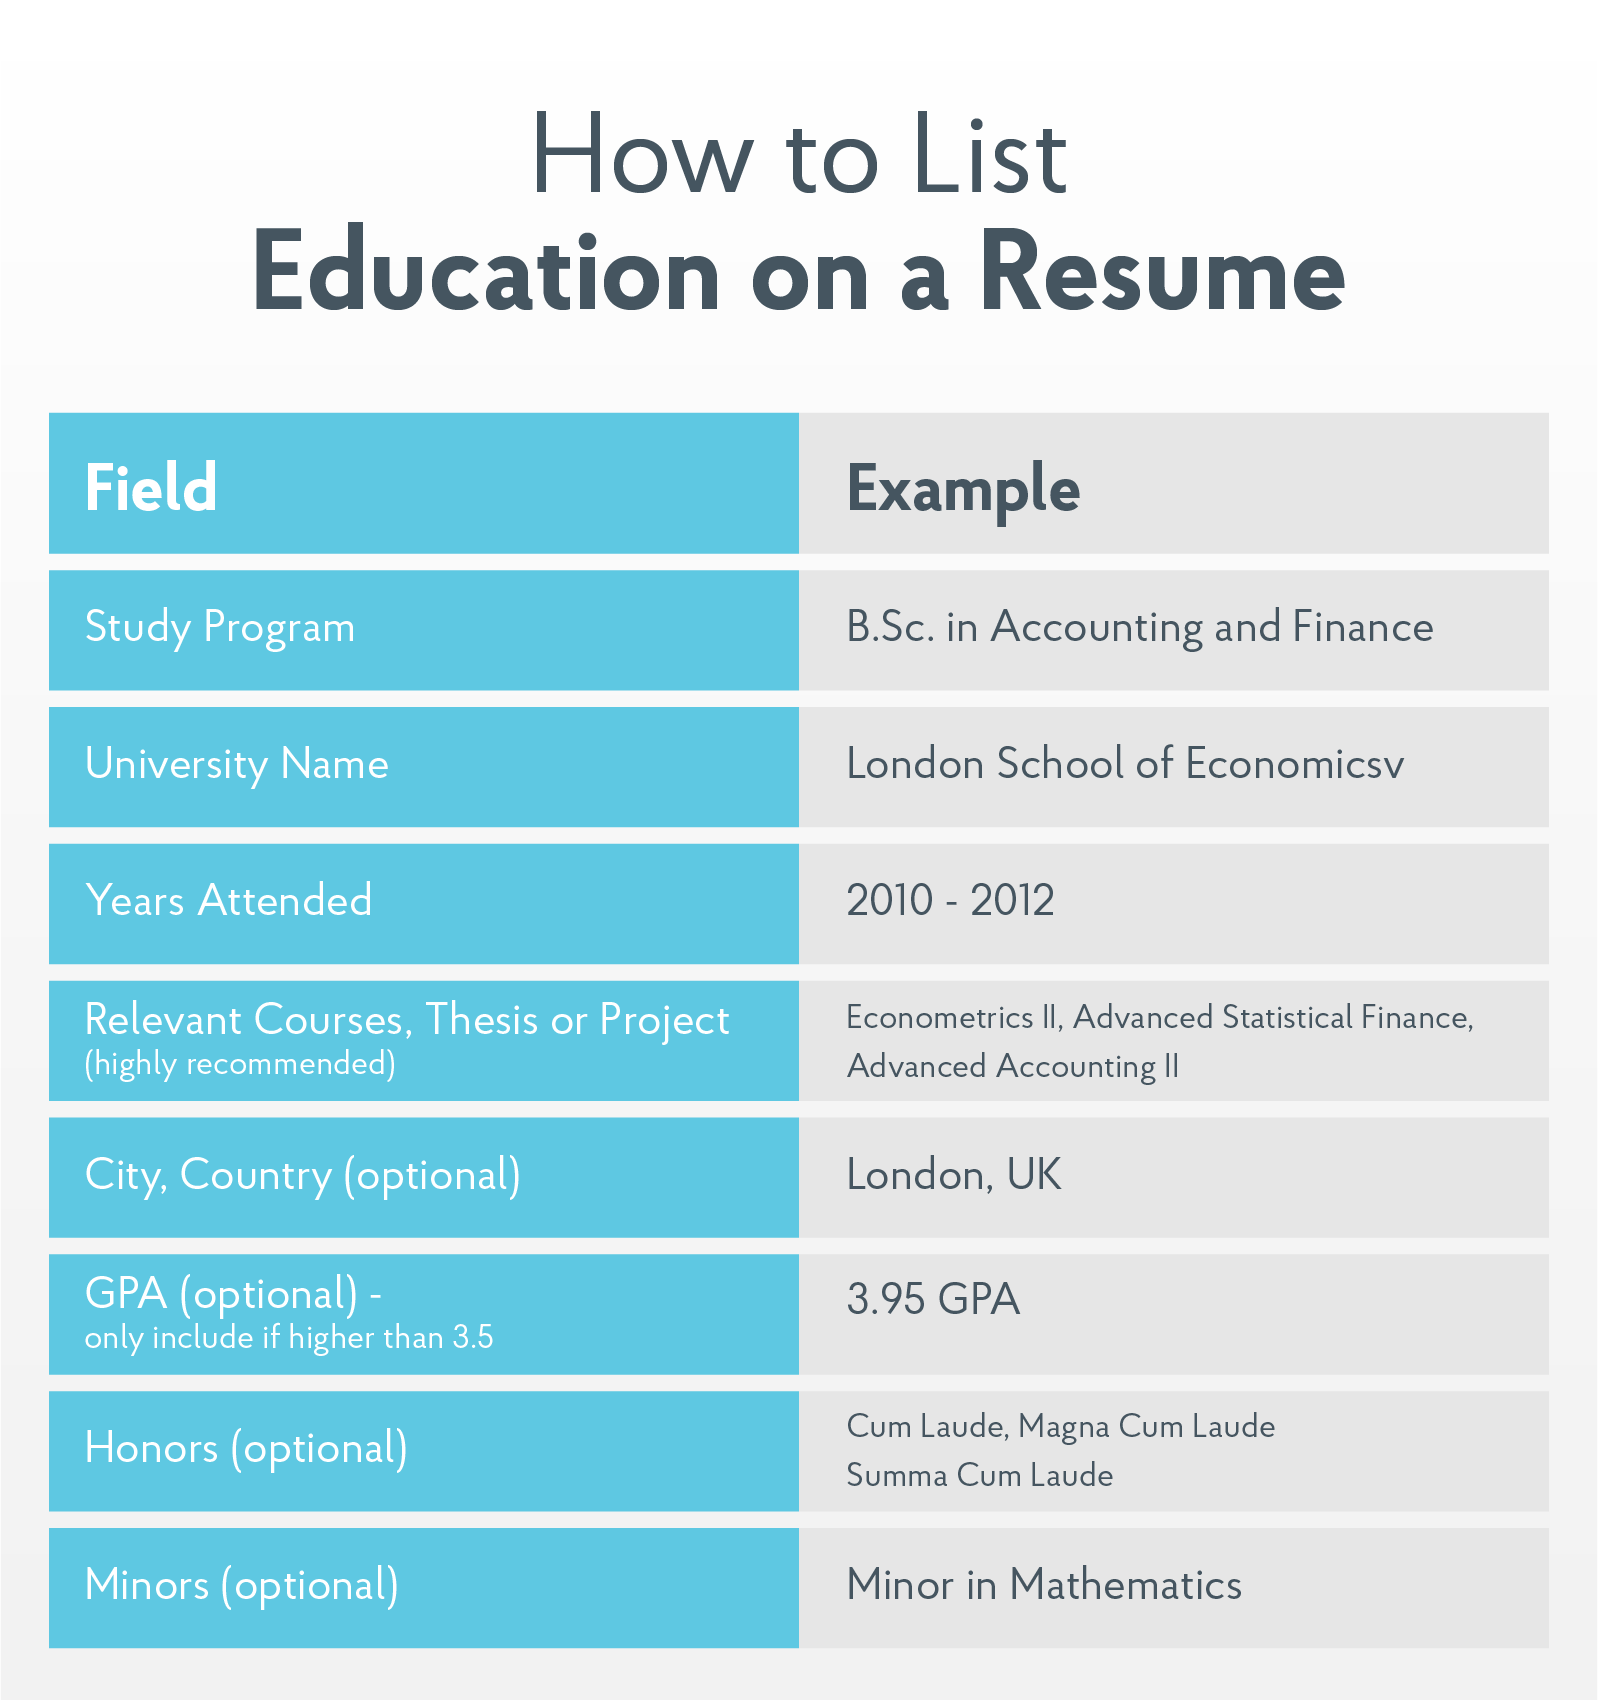 what to list on education section on resume